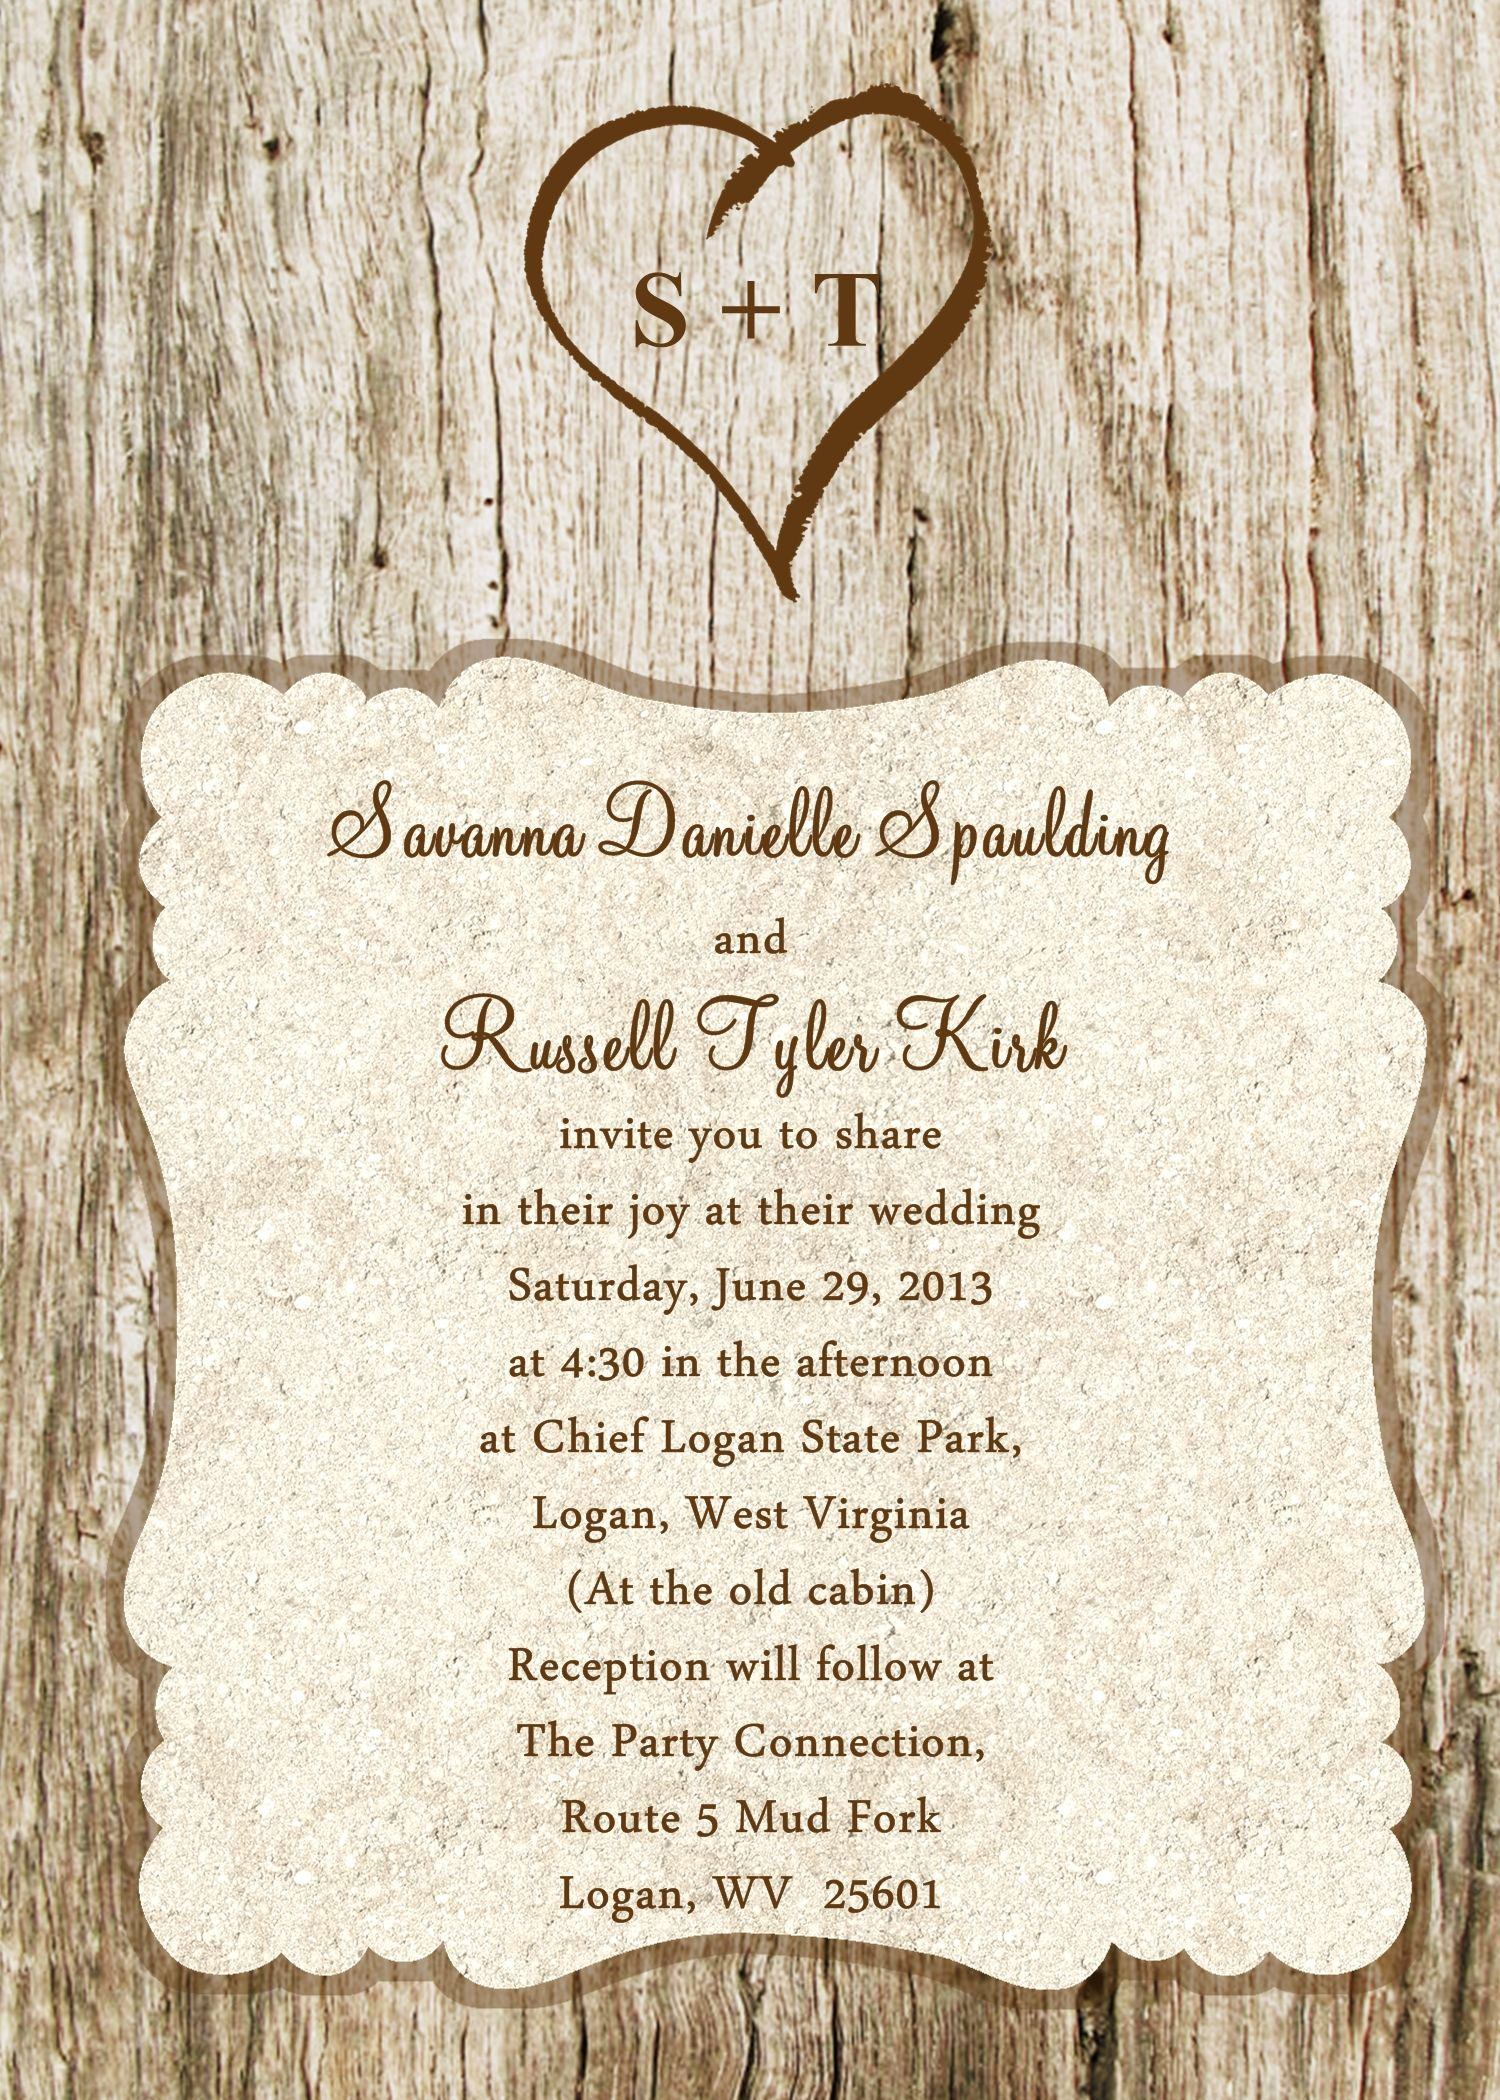 5x7 wedding invitation in wood grain / carved tree theme Contact me ...